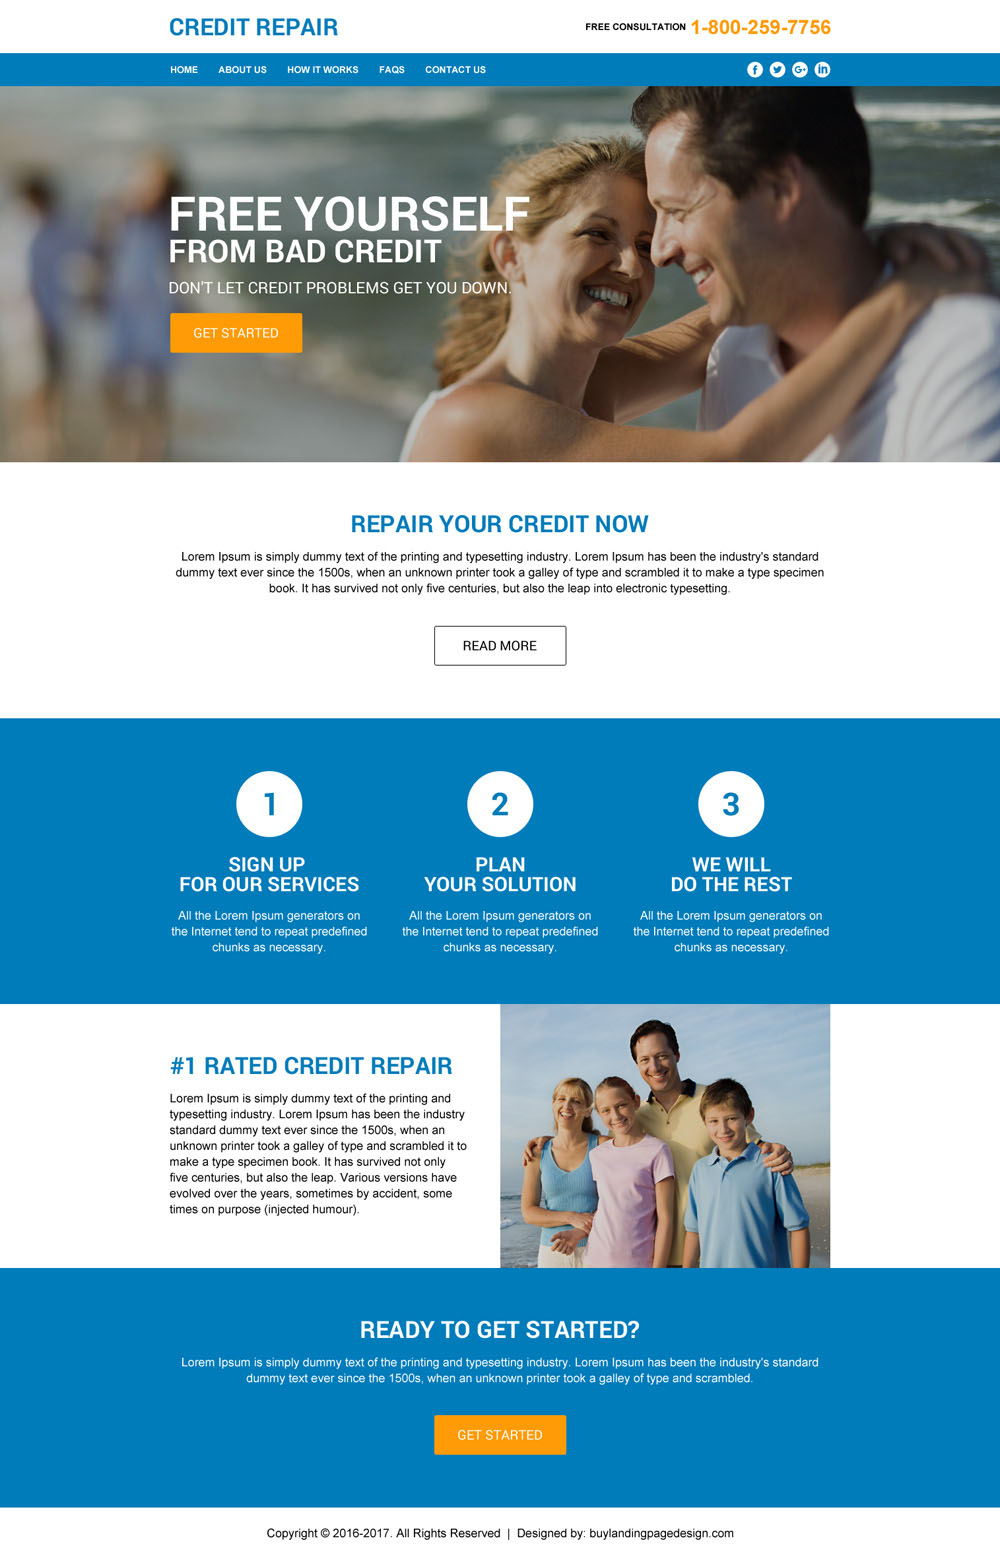 Minimal And Clean Credit Repair Free Consultation Lead Capturing Website Design About Us Page